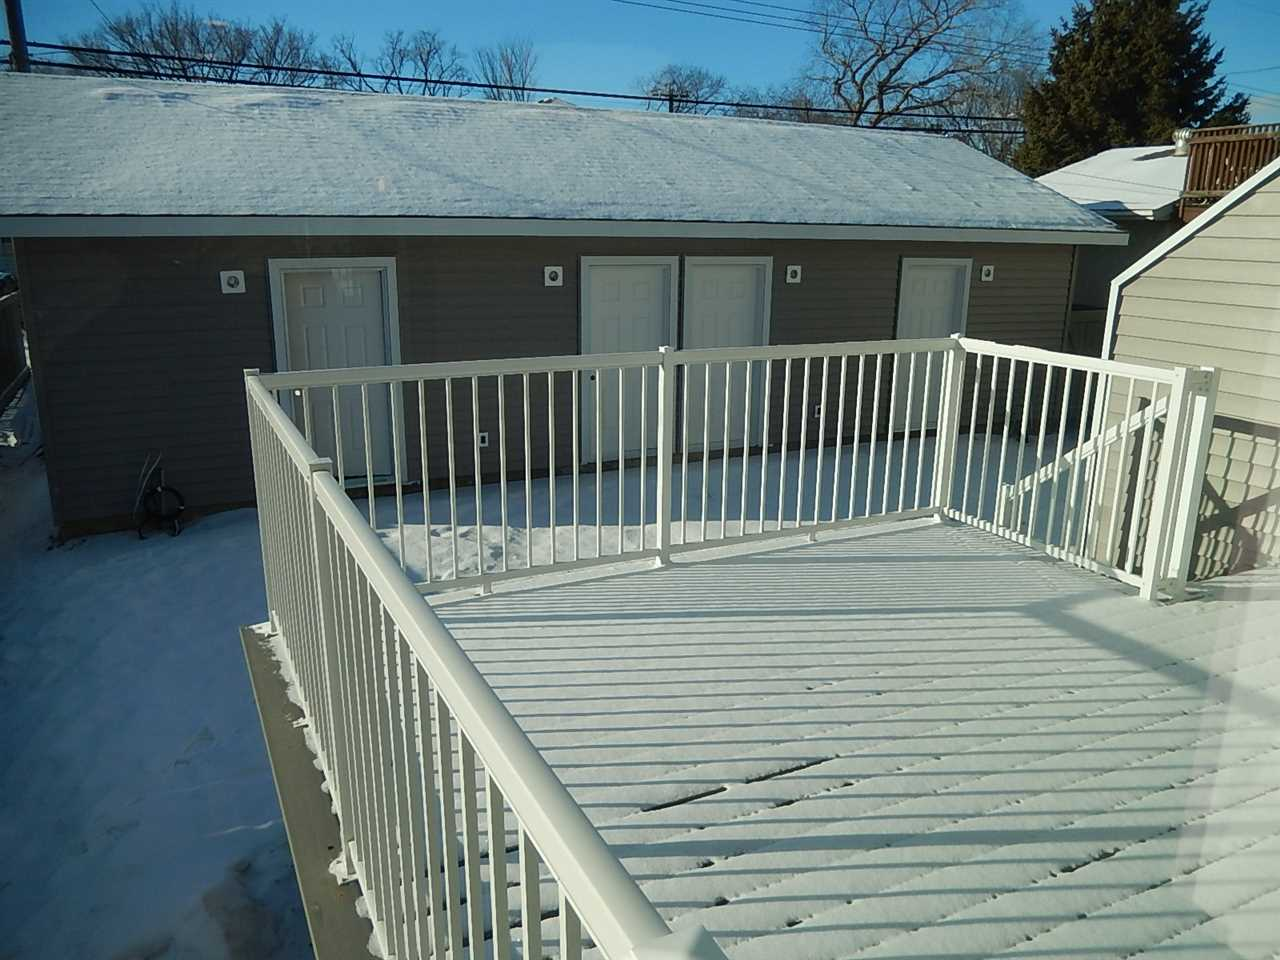 Easy access to the sundeck and garage.